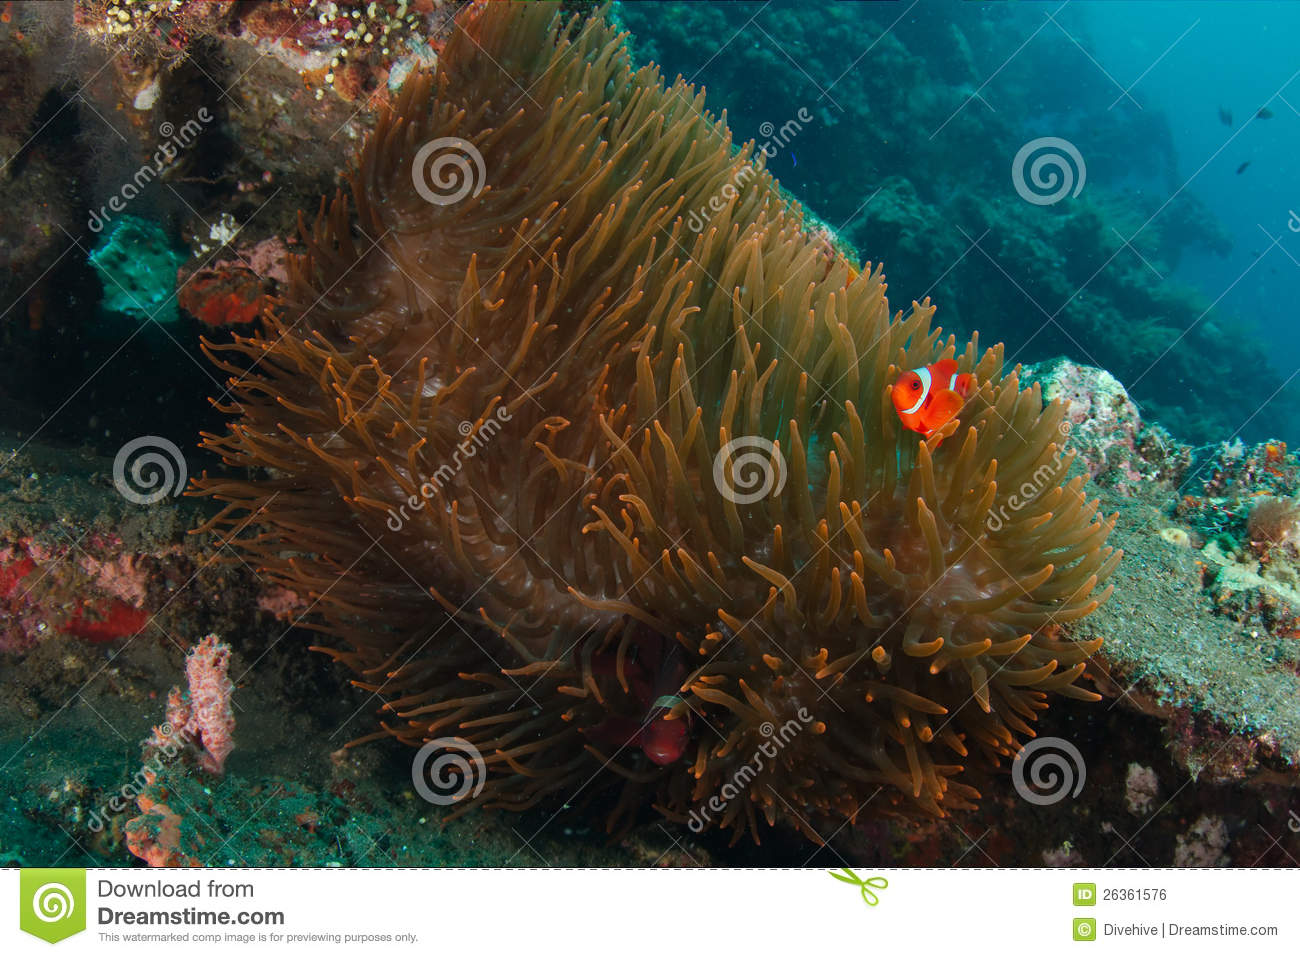 Clownfish in anemoon